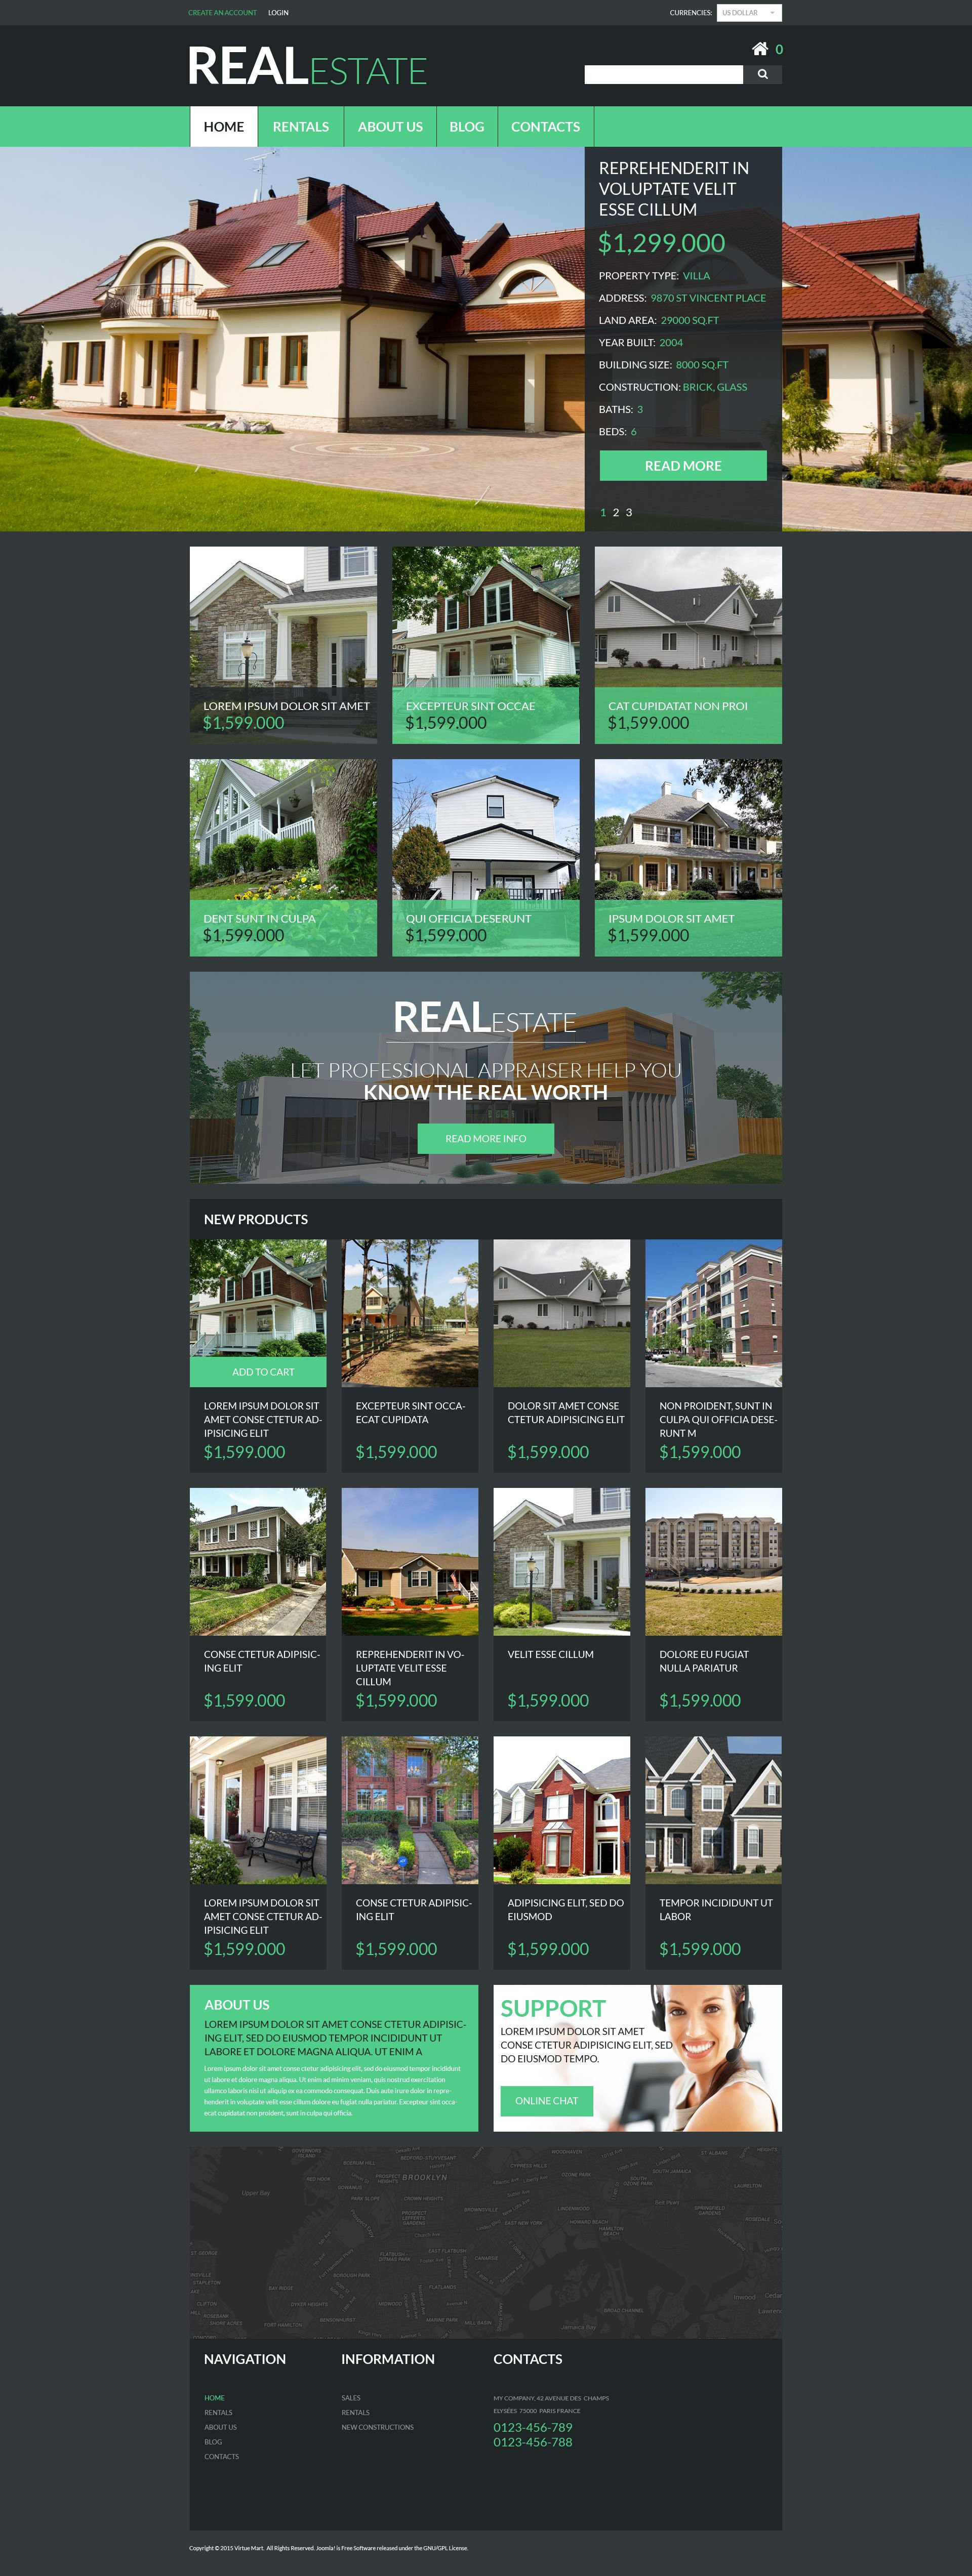 The Real Estate Agency VirtueMart Design 53353, one of the best VirtueMart templates of its kind (real estate, most popular), also known as real estate agency VirtueMart template, services VirtueMart template, house VirtueMart template, home VirtueMart template, apartment VirtueMart template, buildings VirtueMart template, finance VirtueMart template, loan VirtueMart template, sales VirtueMart template, rentals VirtueMart template, management VirtueMart template, search VirtueMart template, team VirtueMart template, money VirtueMart template, foreclosure VirtueMart template, estimator VirtueMart template, investment VirtueMart template, development VirtueMart template, constructions VirtueMart template, architecture VirtueMart template, engineering VirtueMart template, apartment VirtueMart template, sale VirtueMart template, rent VirtueMart template, arch and related with real estate agency, services, house, home, apartment, buildings, finance, loan, sales, rentals, management, search, team, money, foreclosure, estimator, investment, development, constructions, architecture, engineering, apartment, sale, rent, arch, etc.